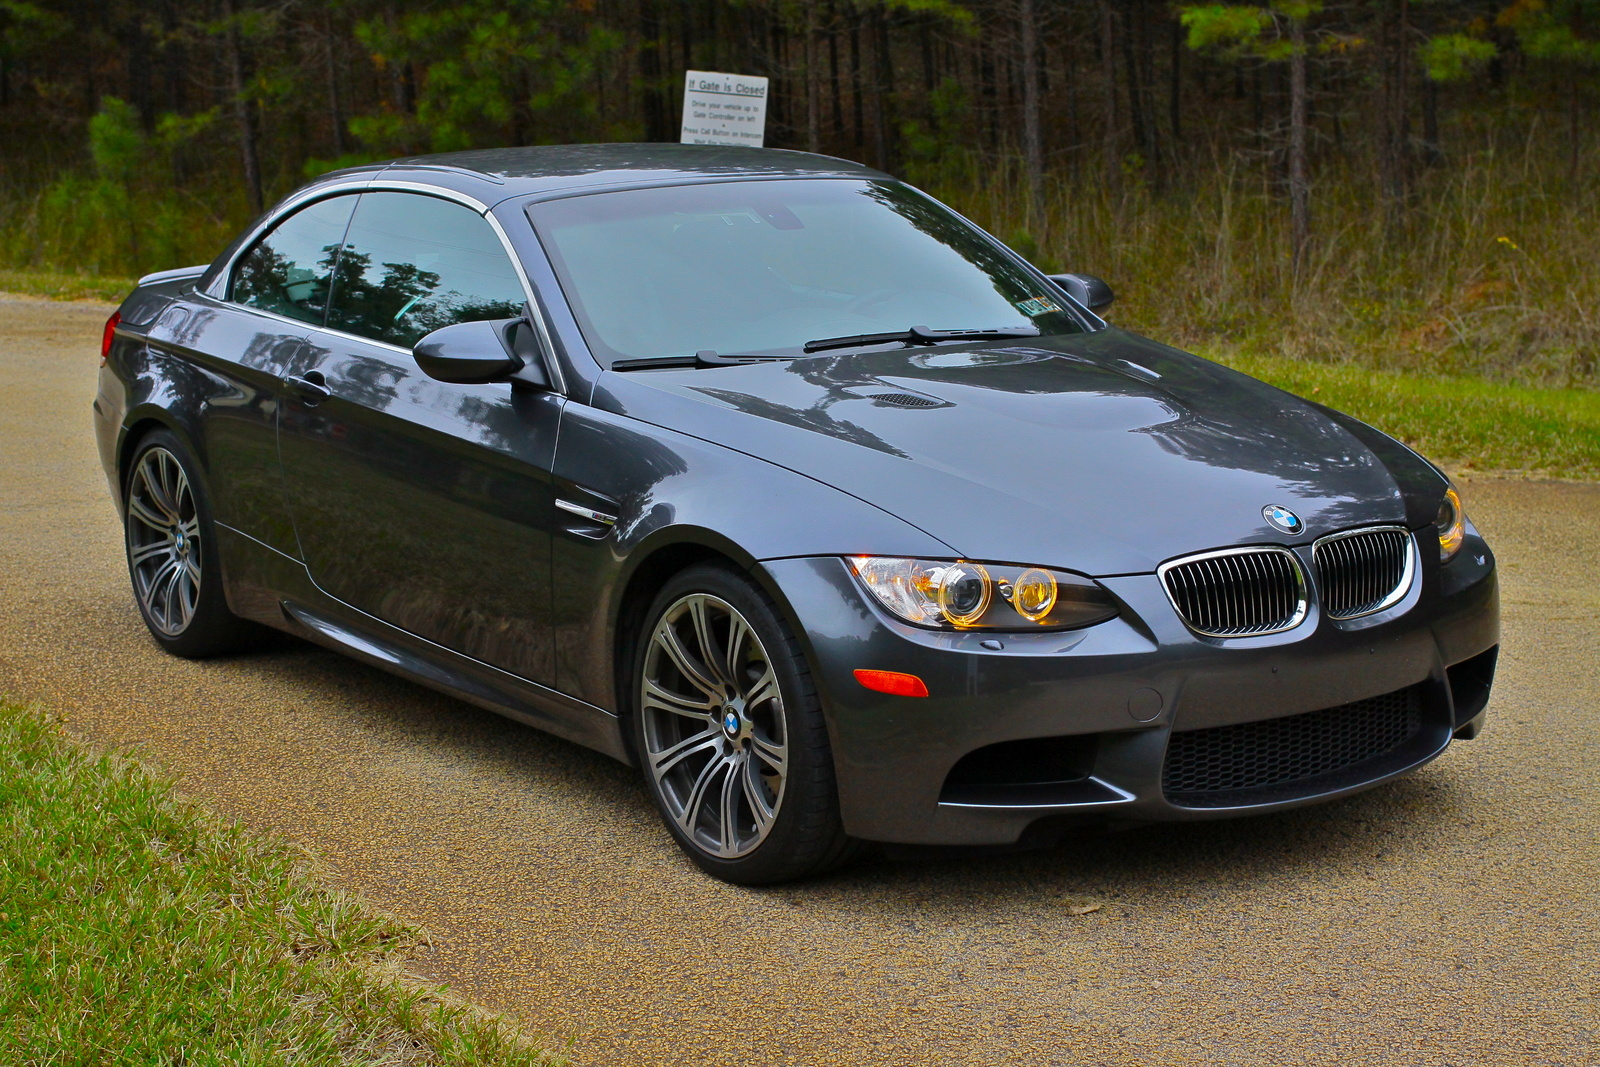 used bmw m3 for sale columbia sc cargurus. Black Bedroom Furniture Sets. Home Design Ideas